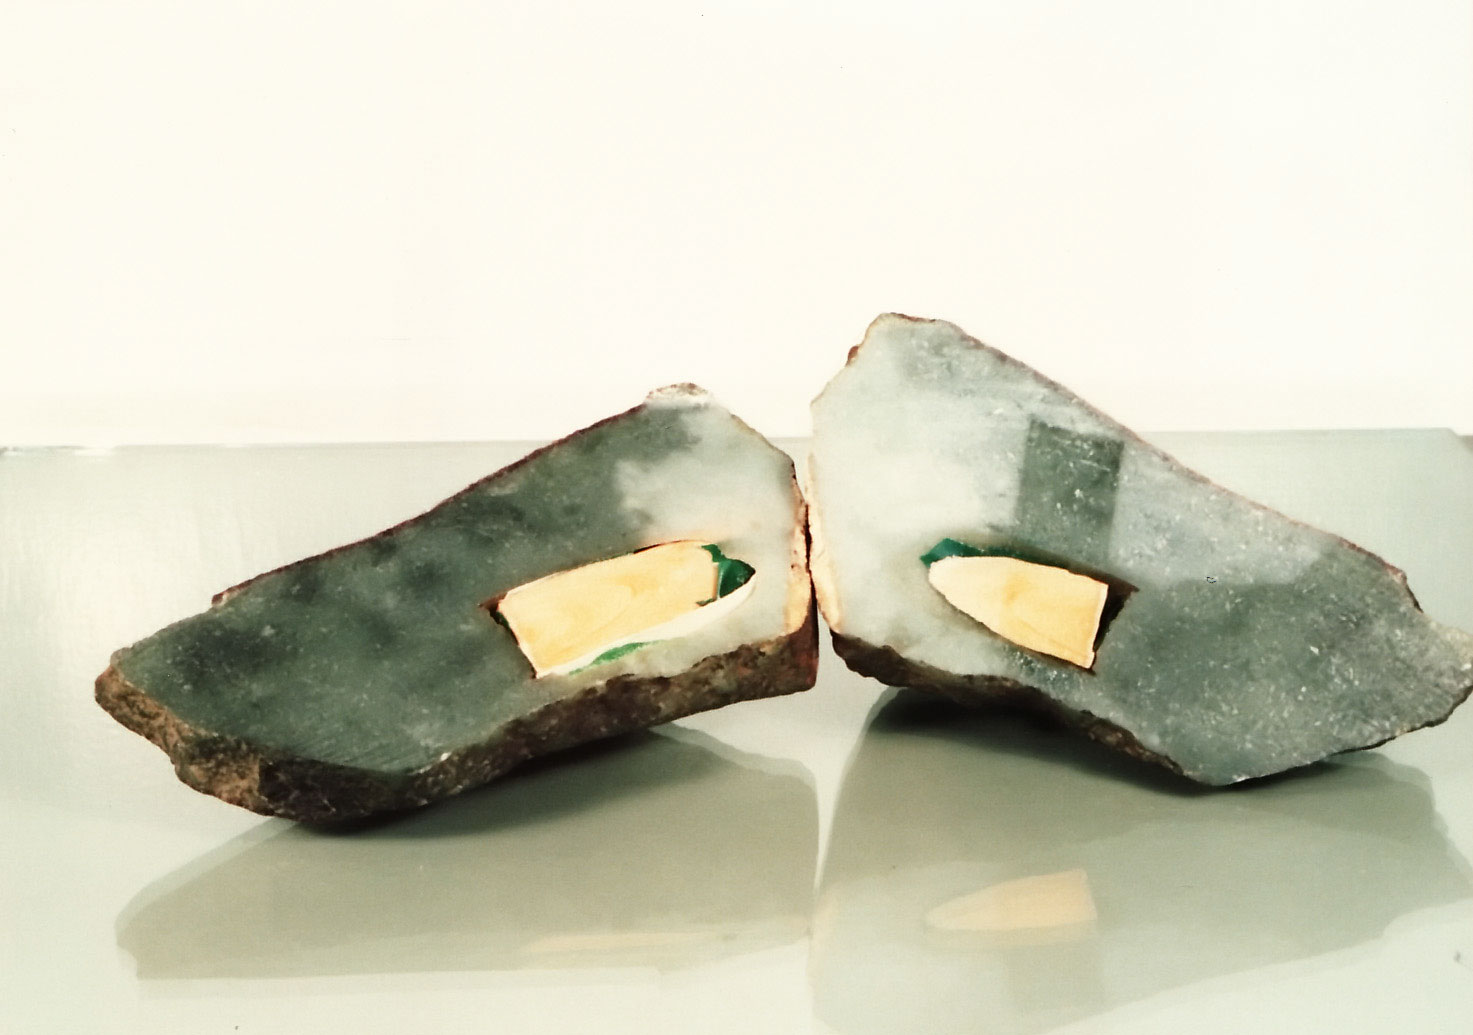 Figure 35. This jadeite boulder had a hole drilled in it from one side to just beneath the surface on the opposite side. A green glue was placed inside near the surface, with a wooden rod added. Then the drill hole was carefully concealed to hide the evidence. Thus when a strong light was shone onto the boulder's surface, a rich green color was revealed. Photos: Richard W. Hughes